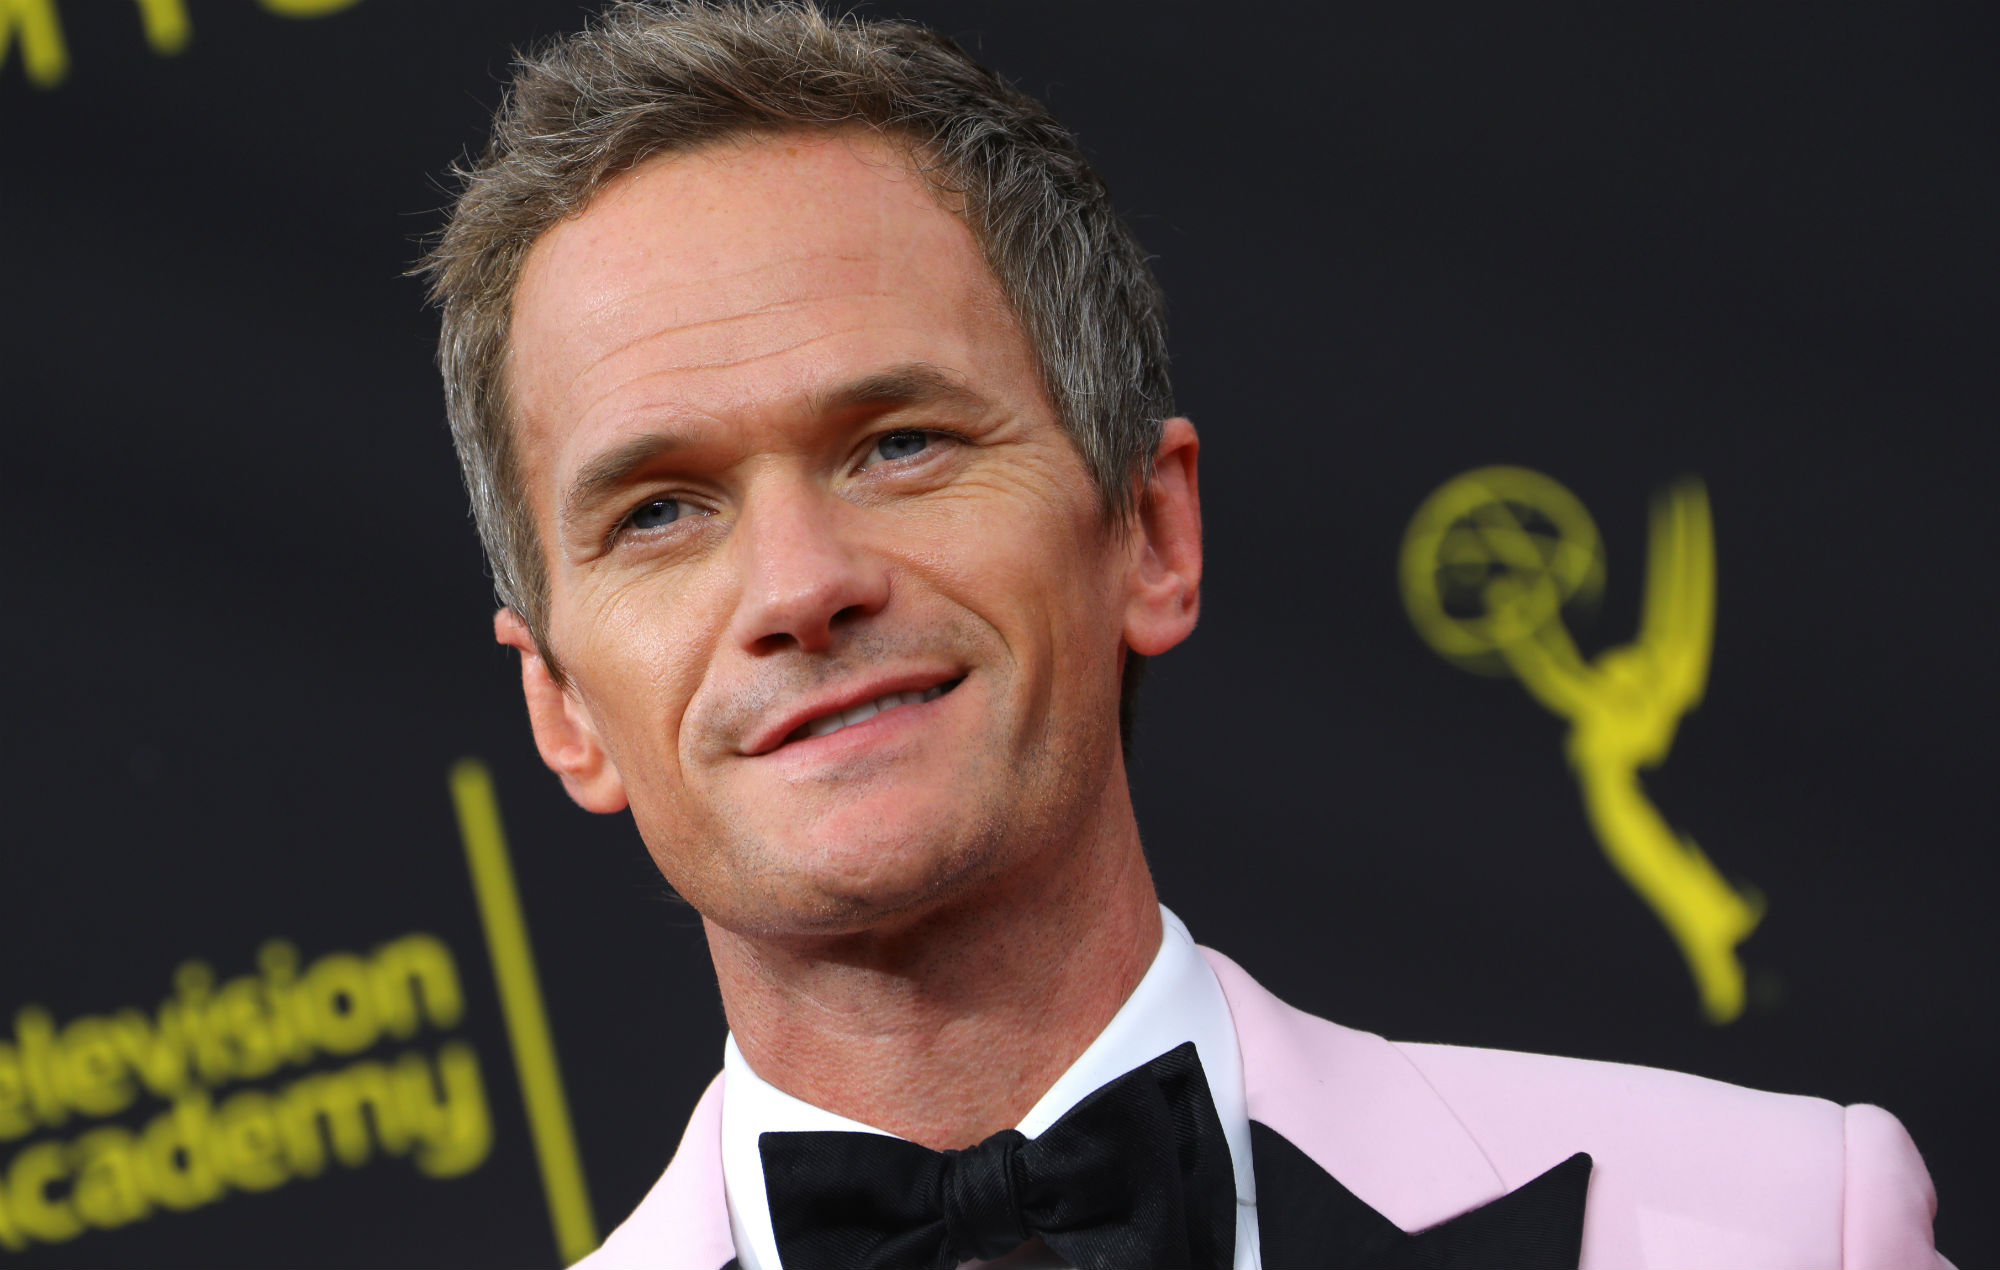 Neil Patrick Harris to join 'The Matrix 4'